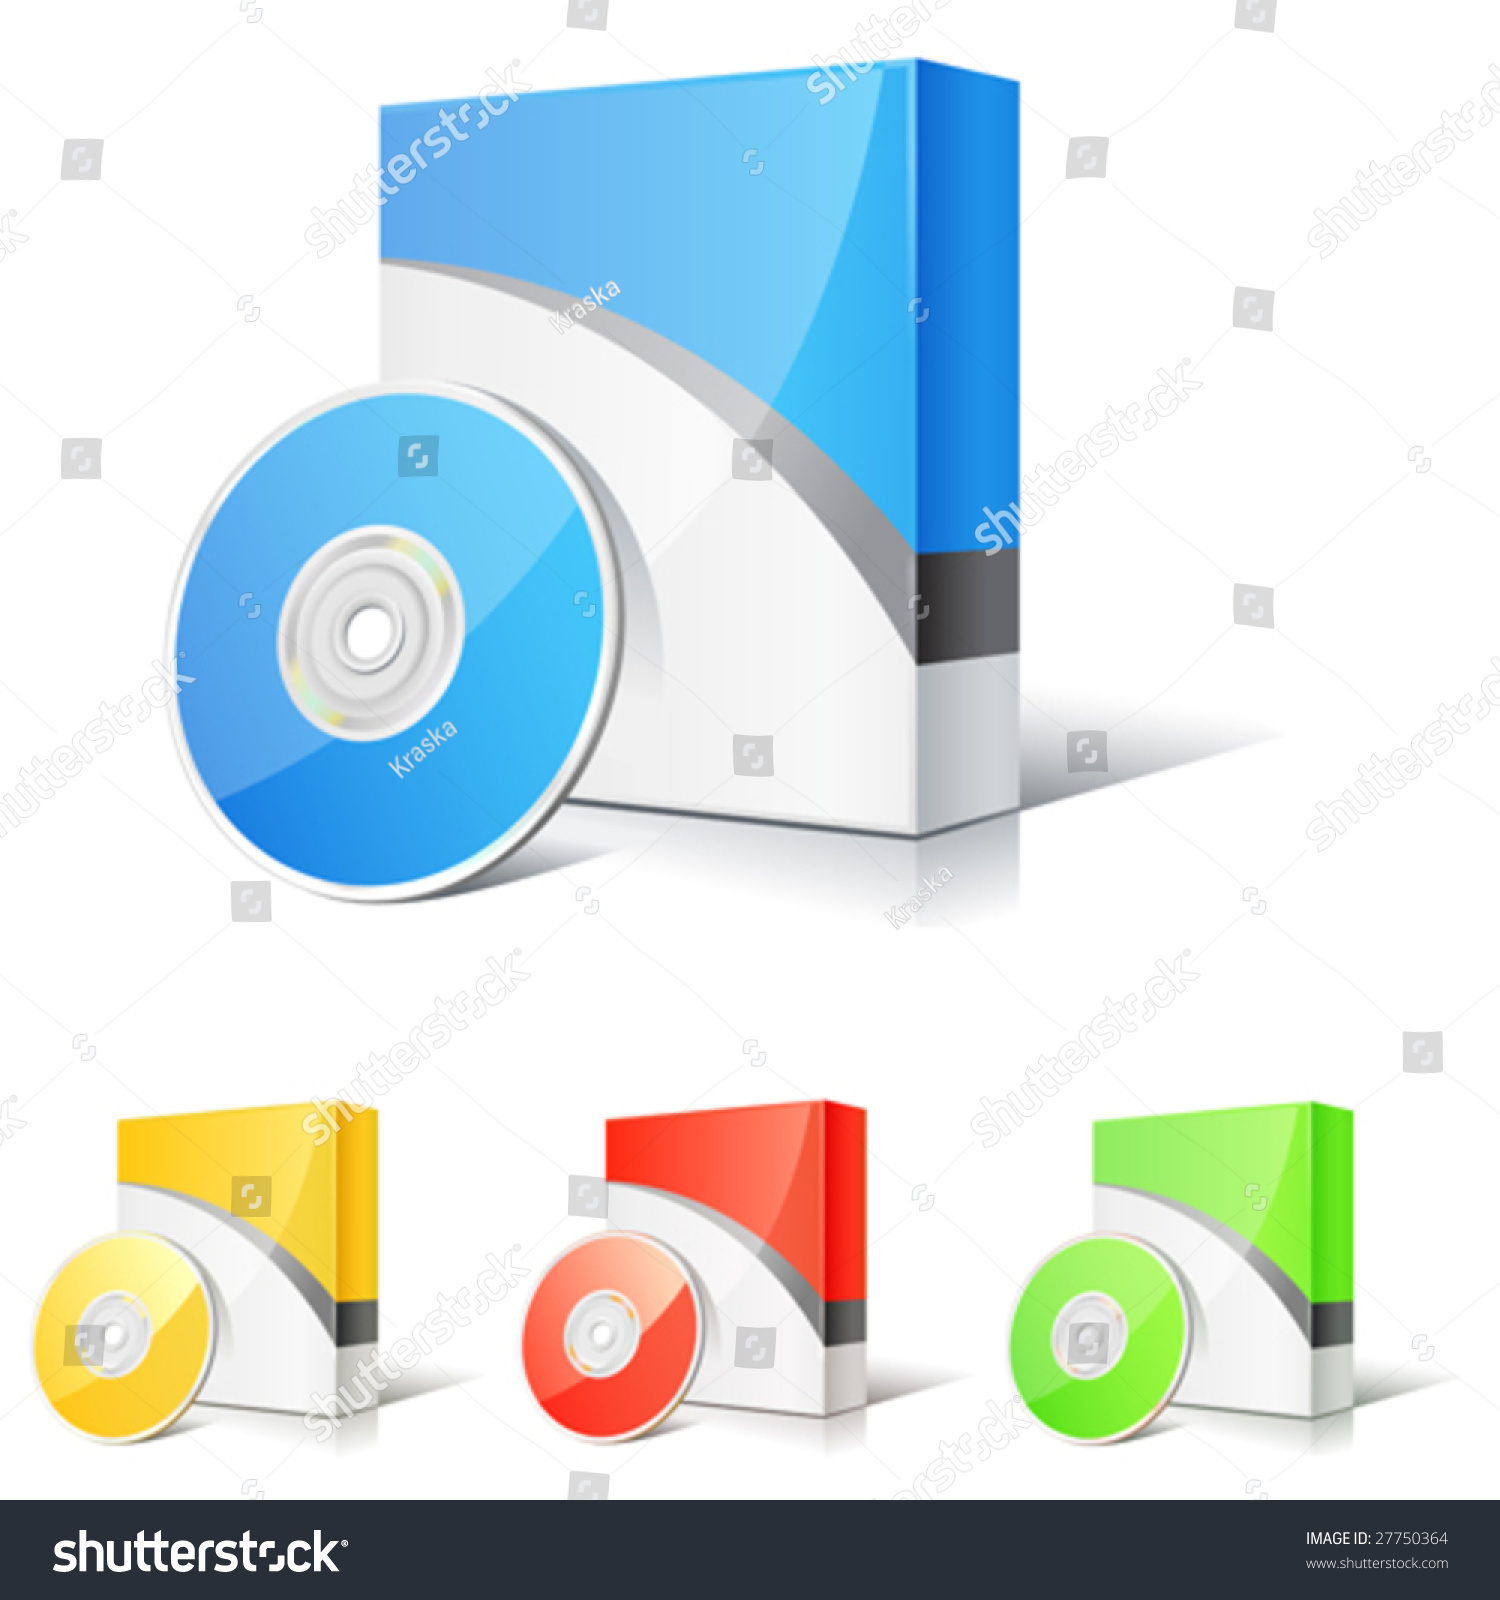 Vector set of software boxes 27750364 shutterstock Vector image software